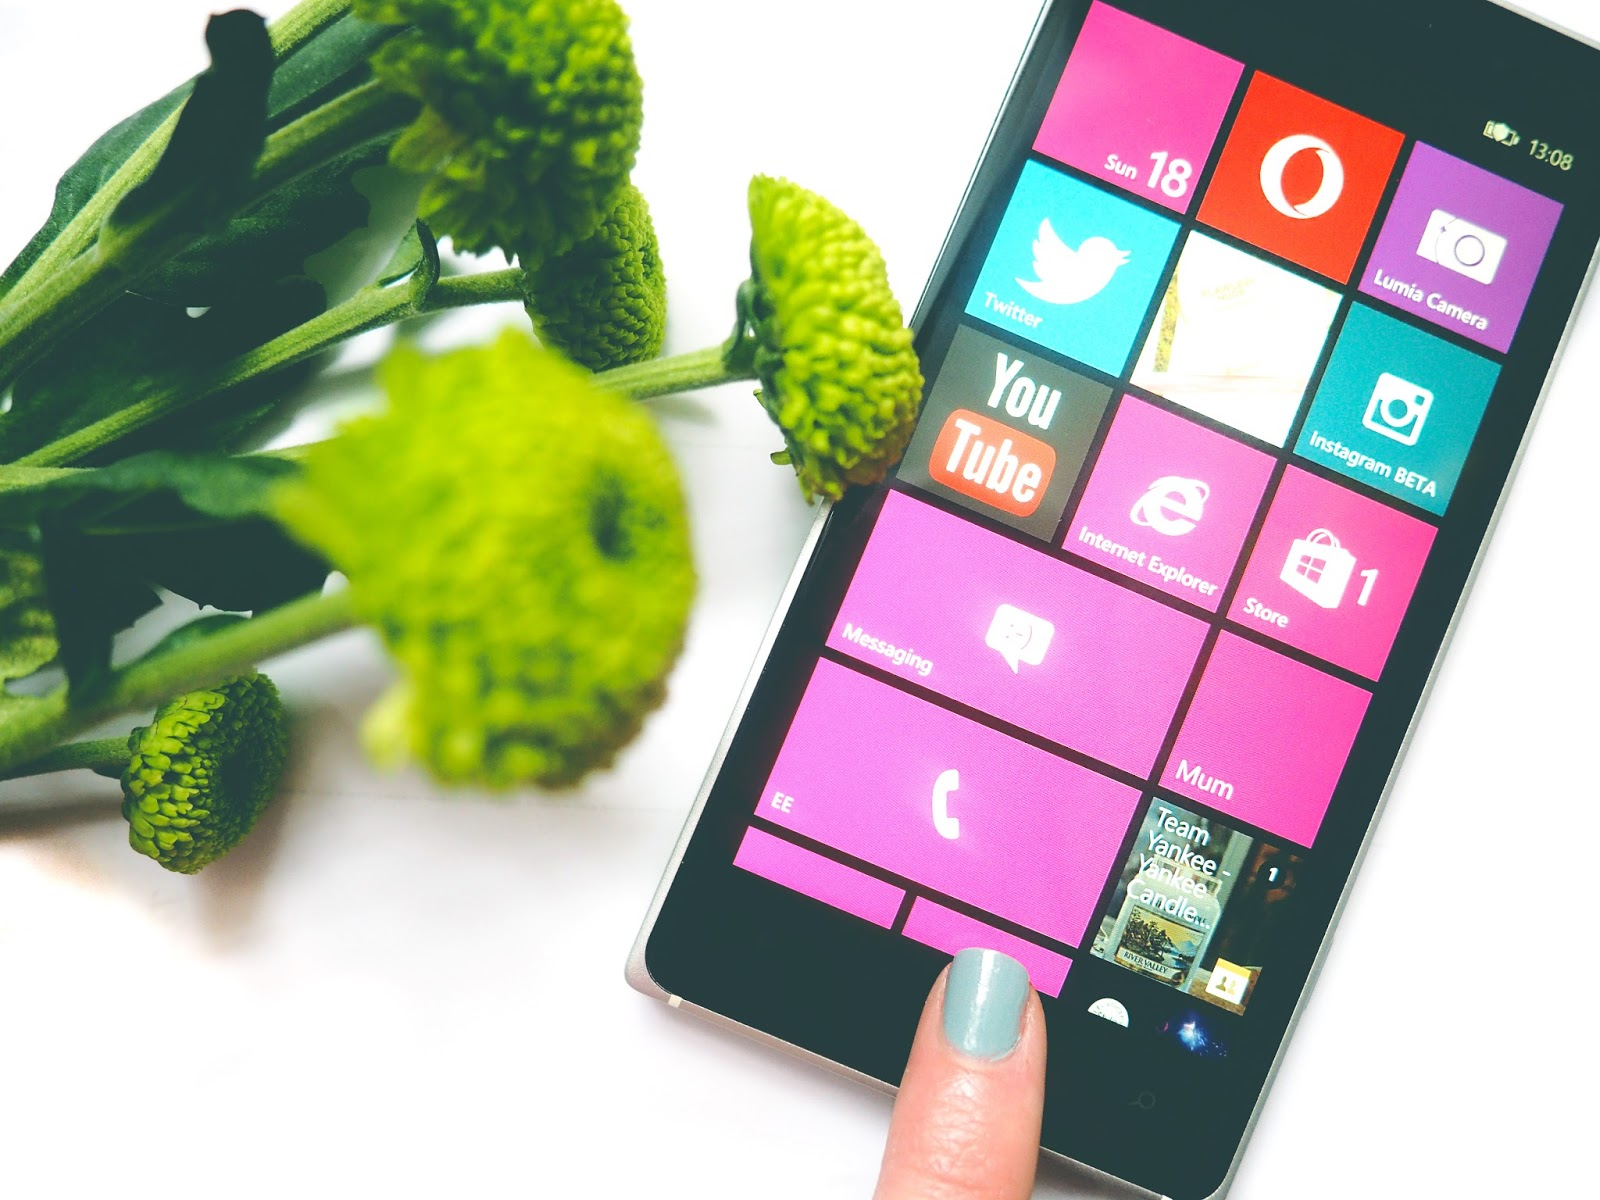 Nokia Lumia 830 Trial Review #LumiaVoices